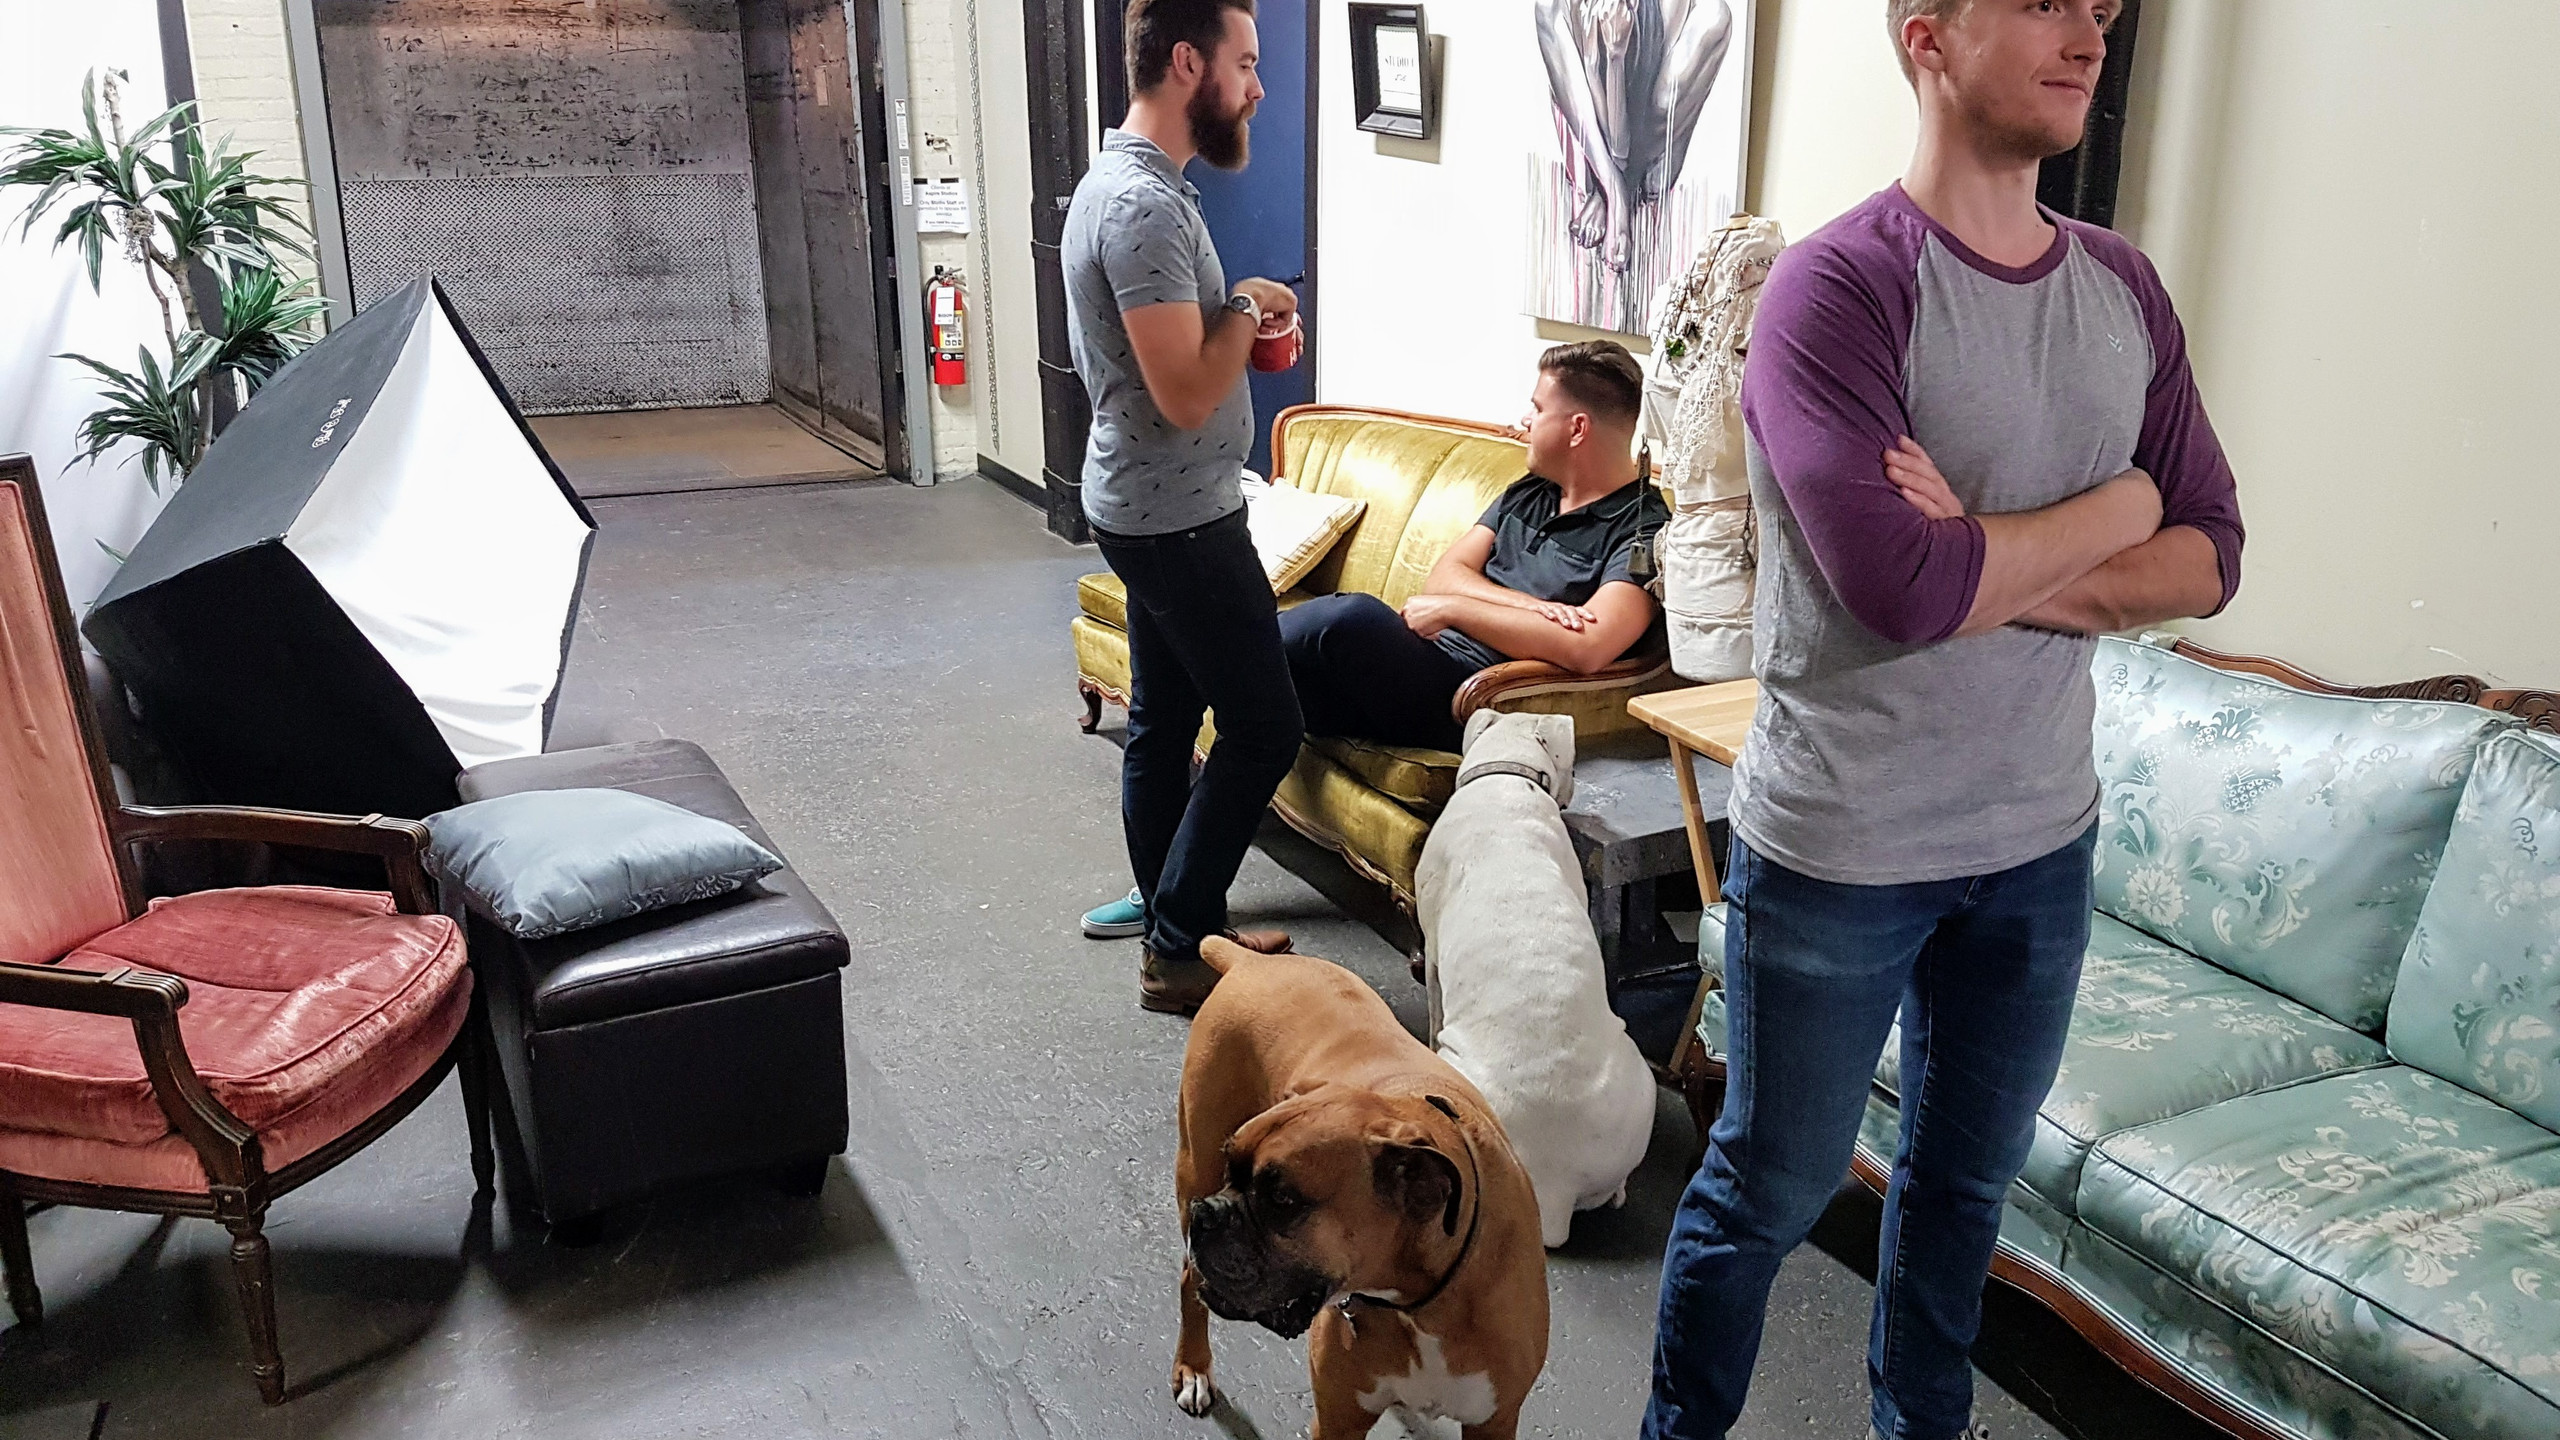 Waiting to get started. There are studio dogs that roam free!